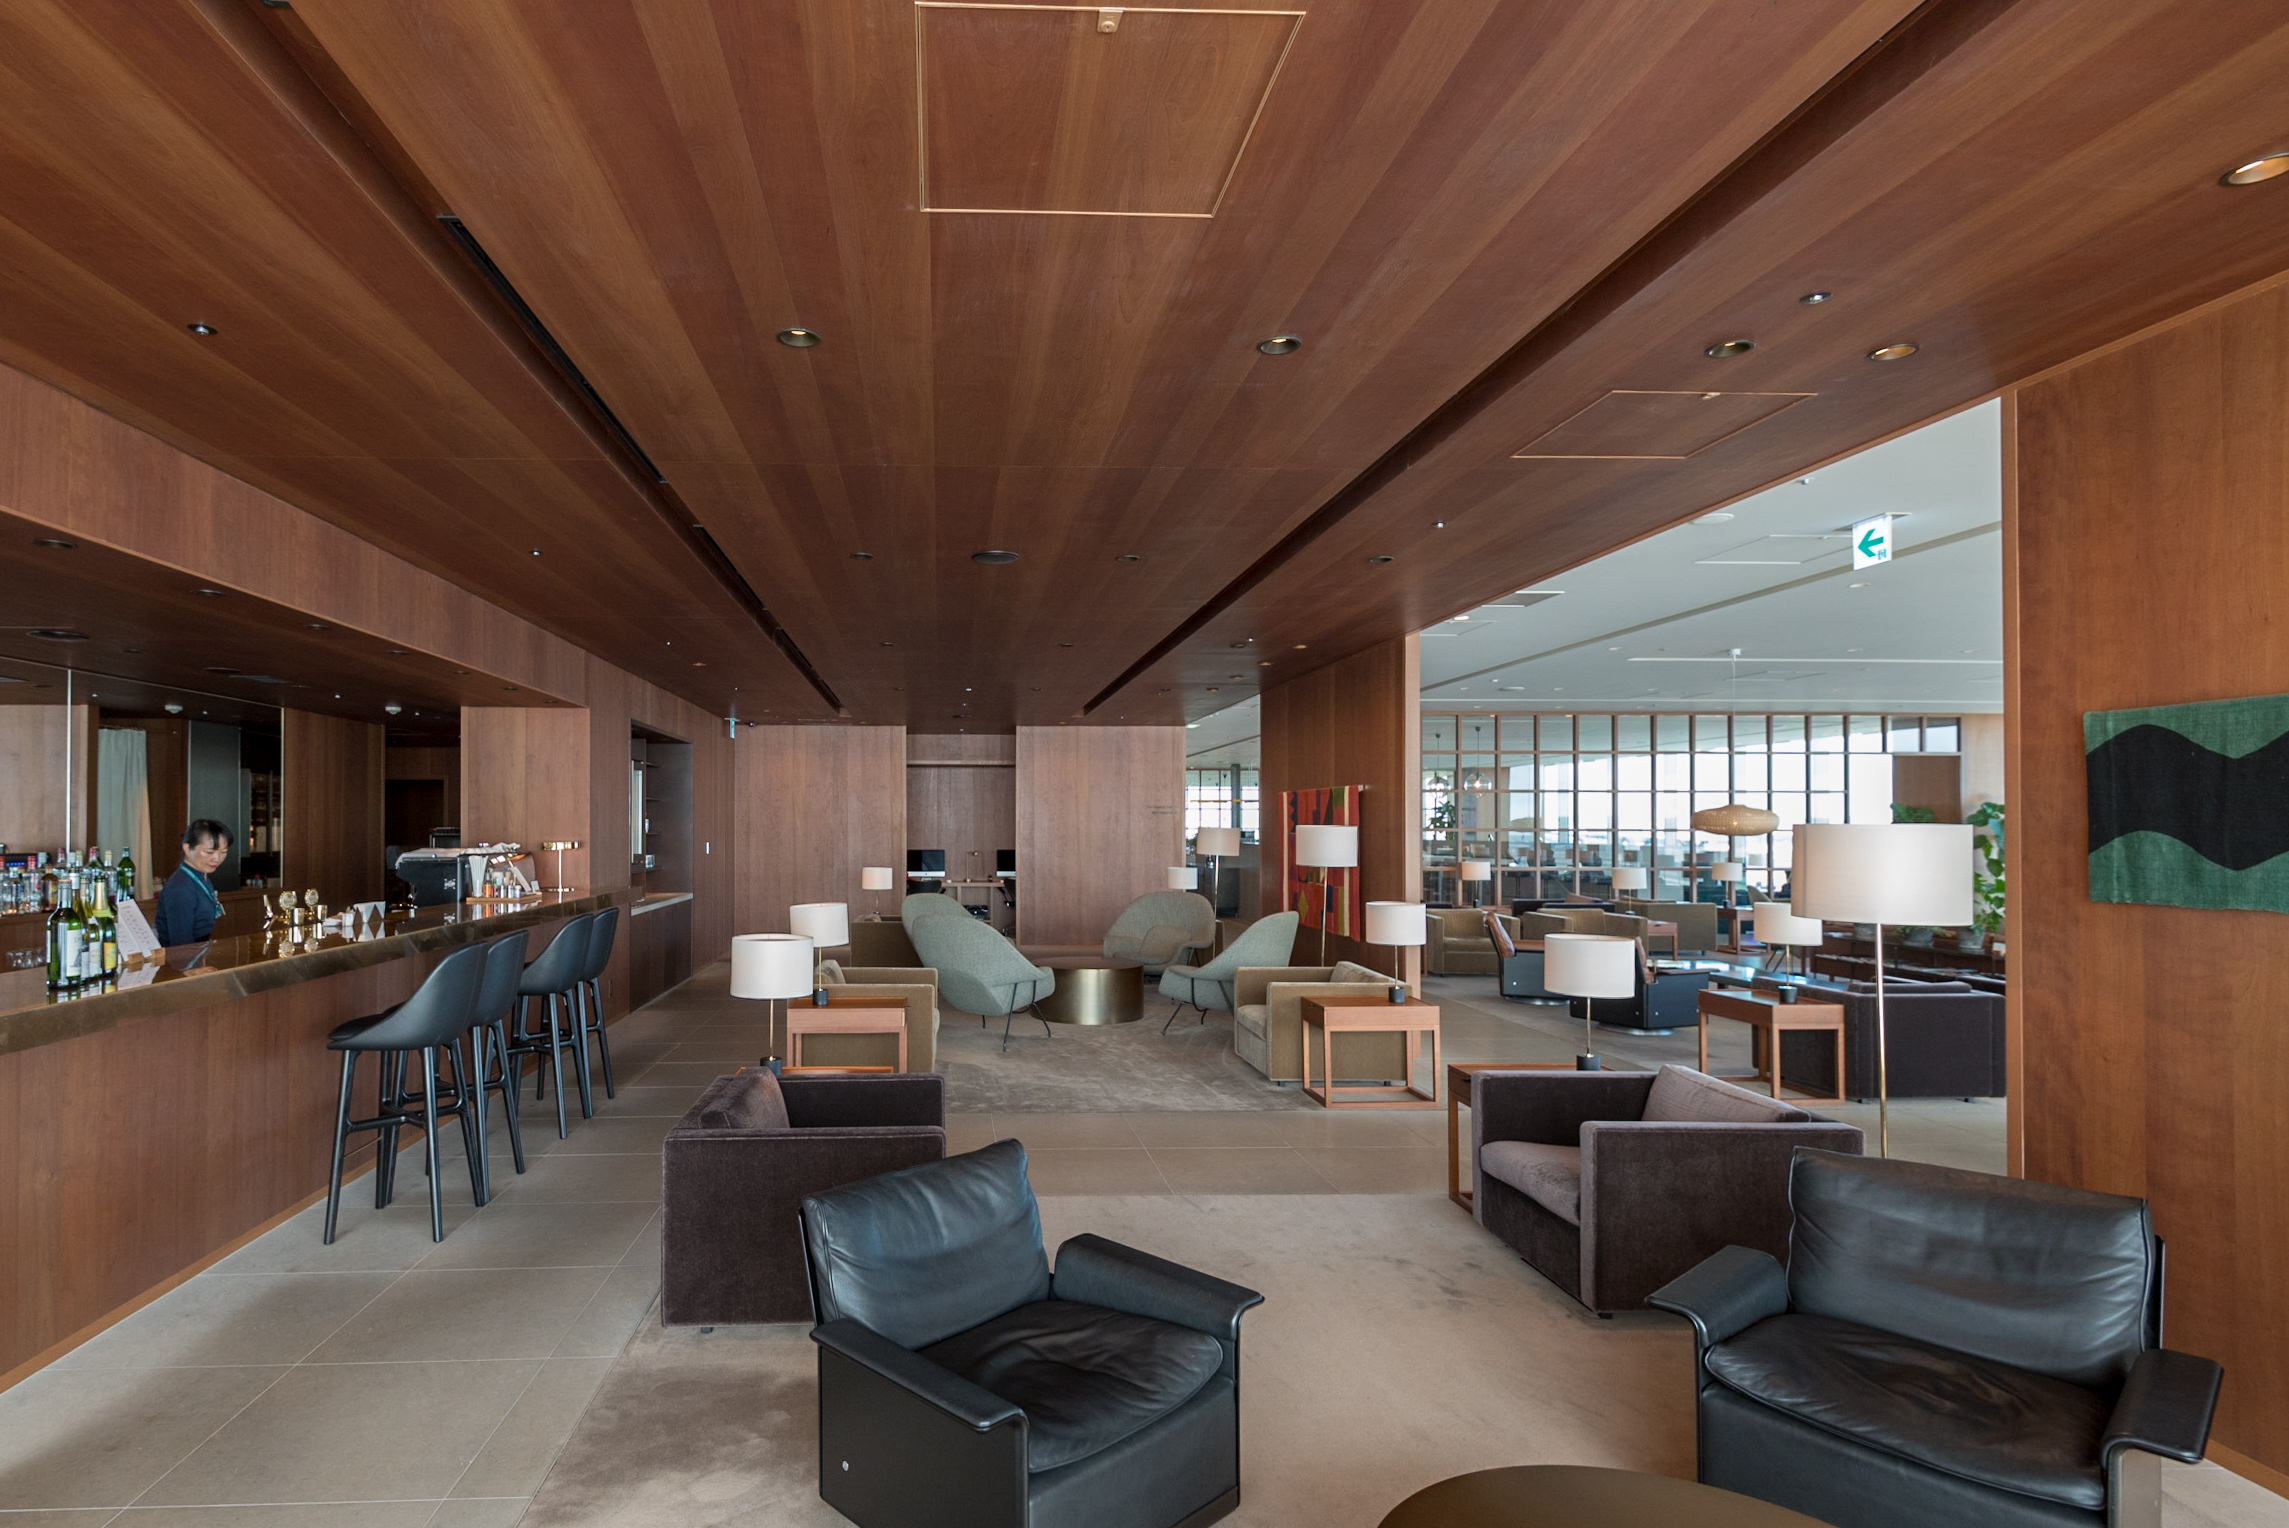 Cathay Pacific Lounge - Haneda Airport (HND)